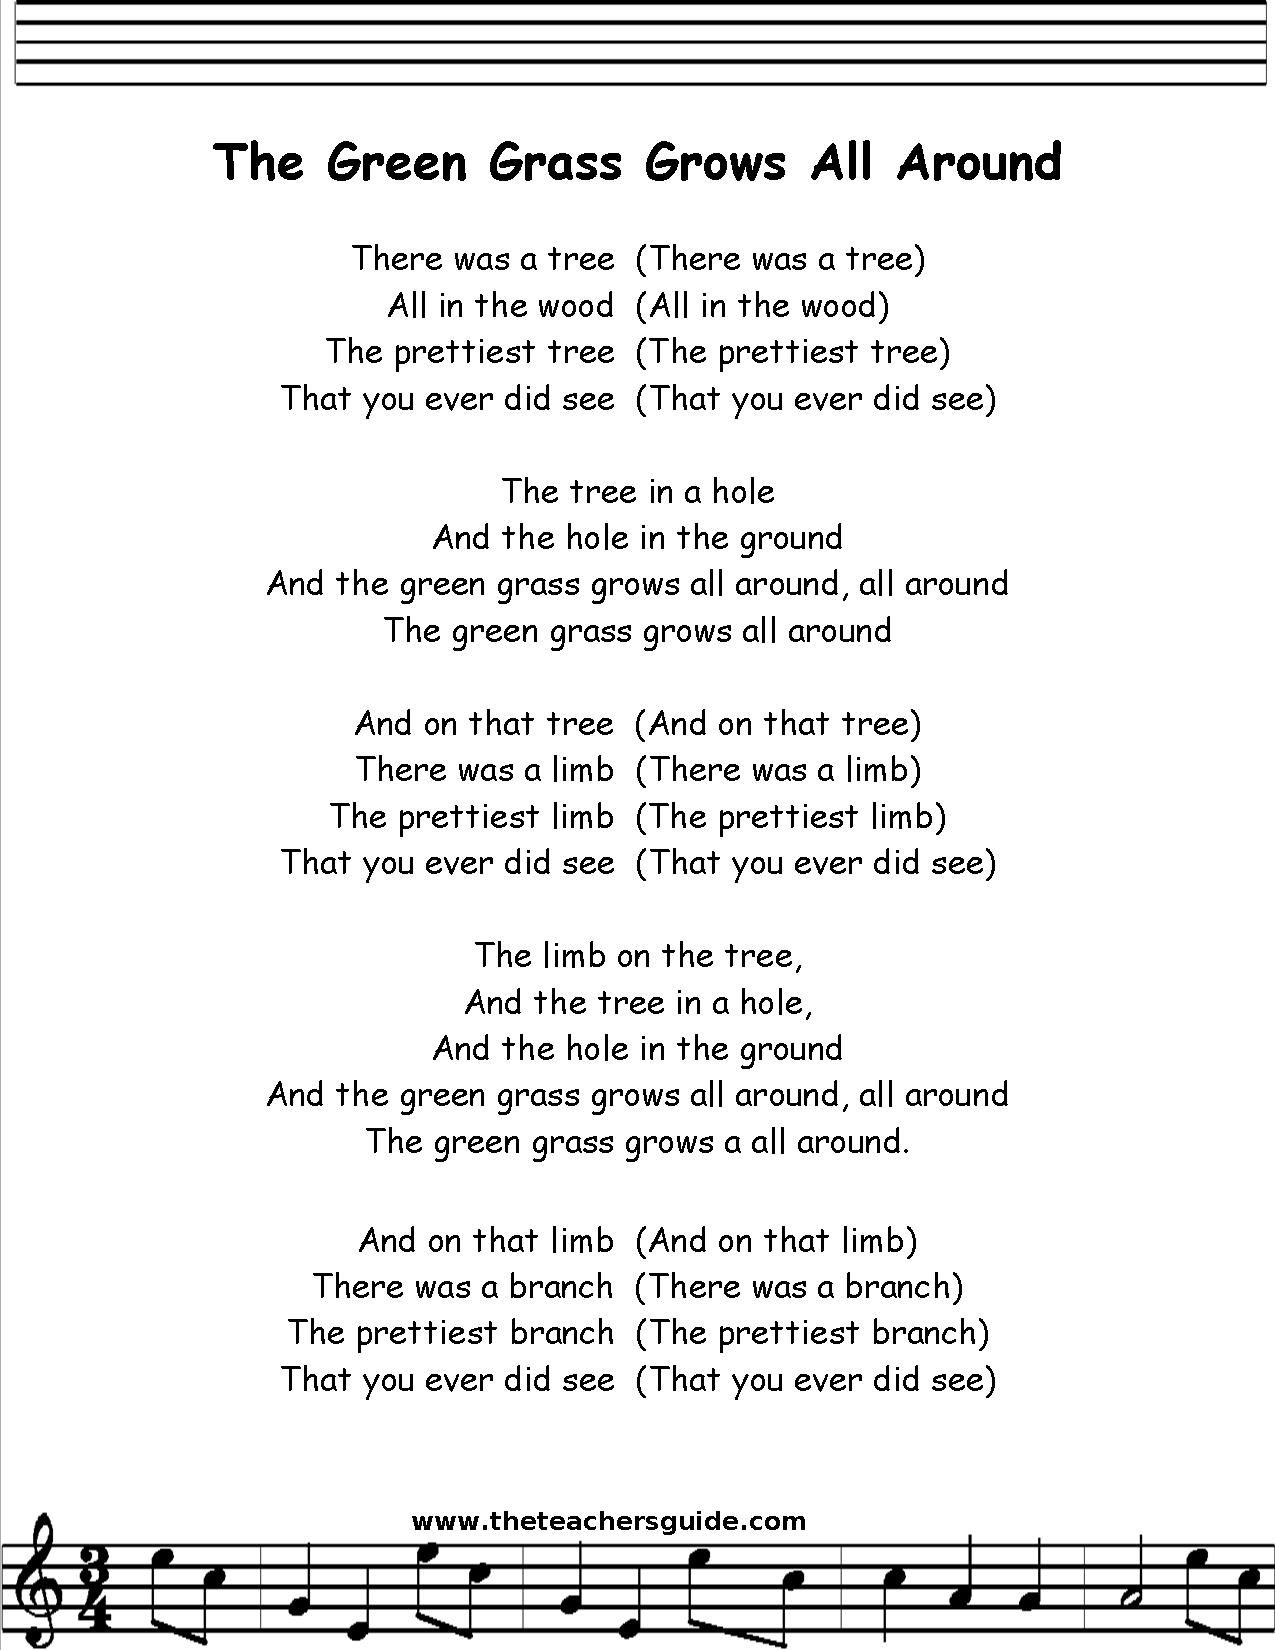 green grass grows all around lyrics printout | super ...